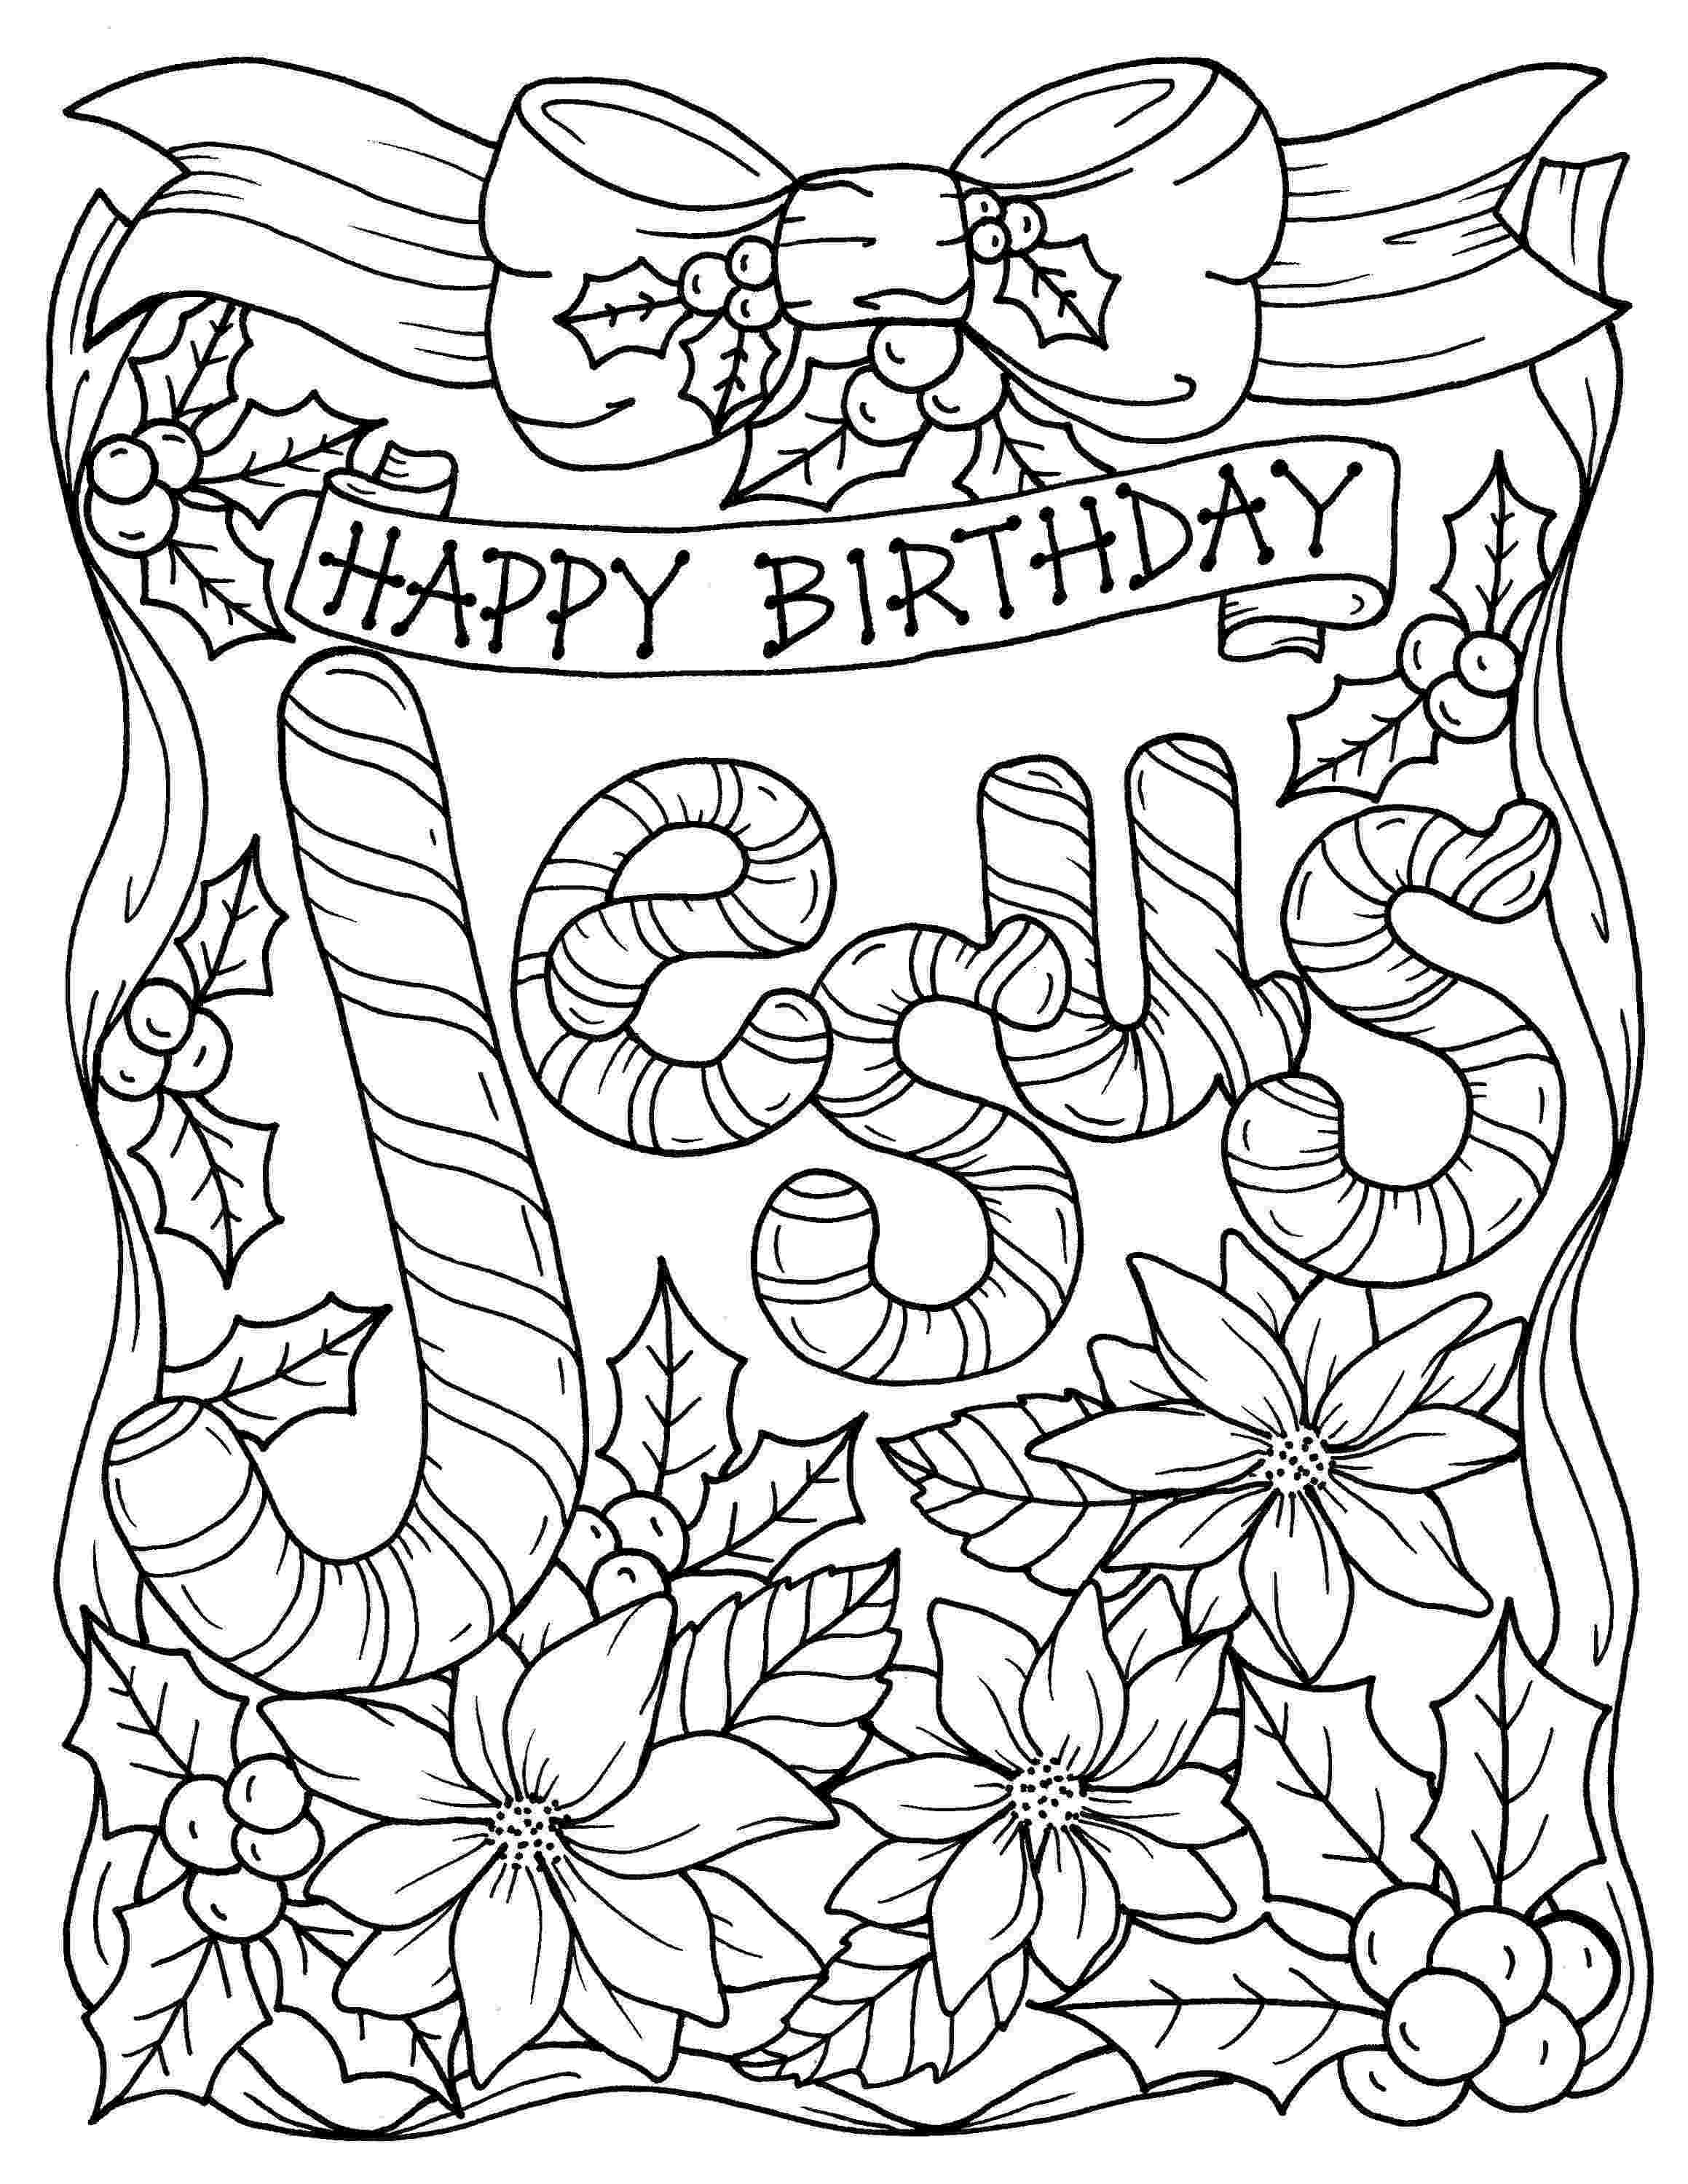 christian coloring pages for adults digital coloring page christian coloring scripture instant coloring christian adults pages for